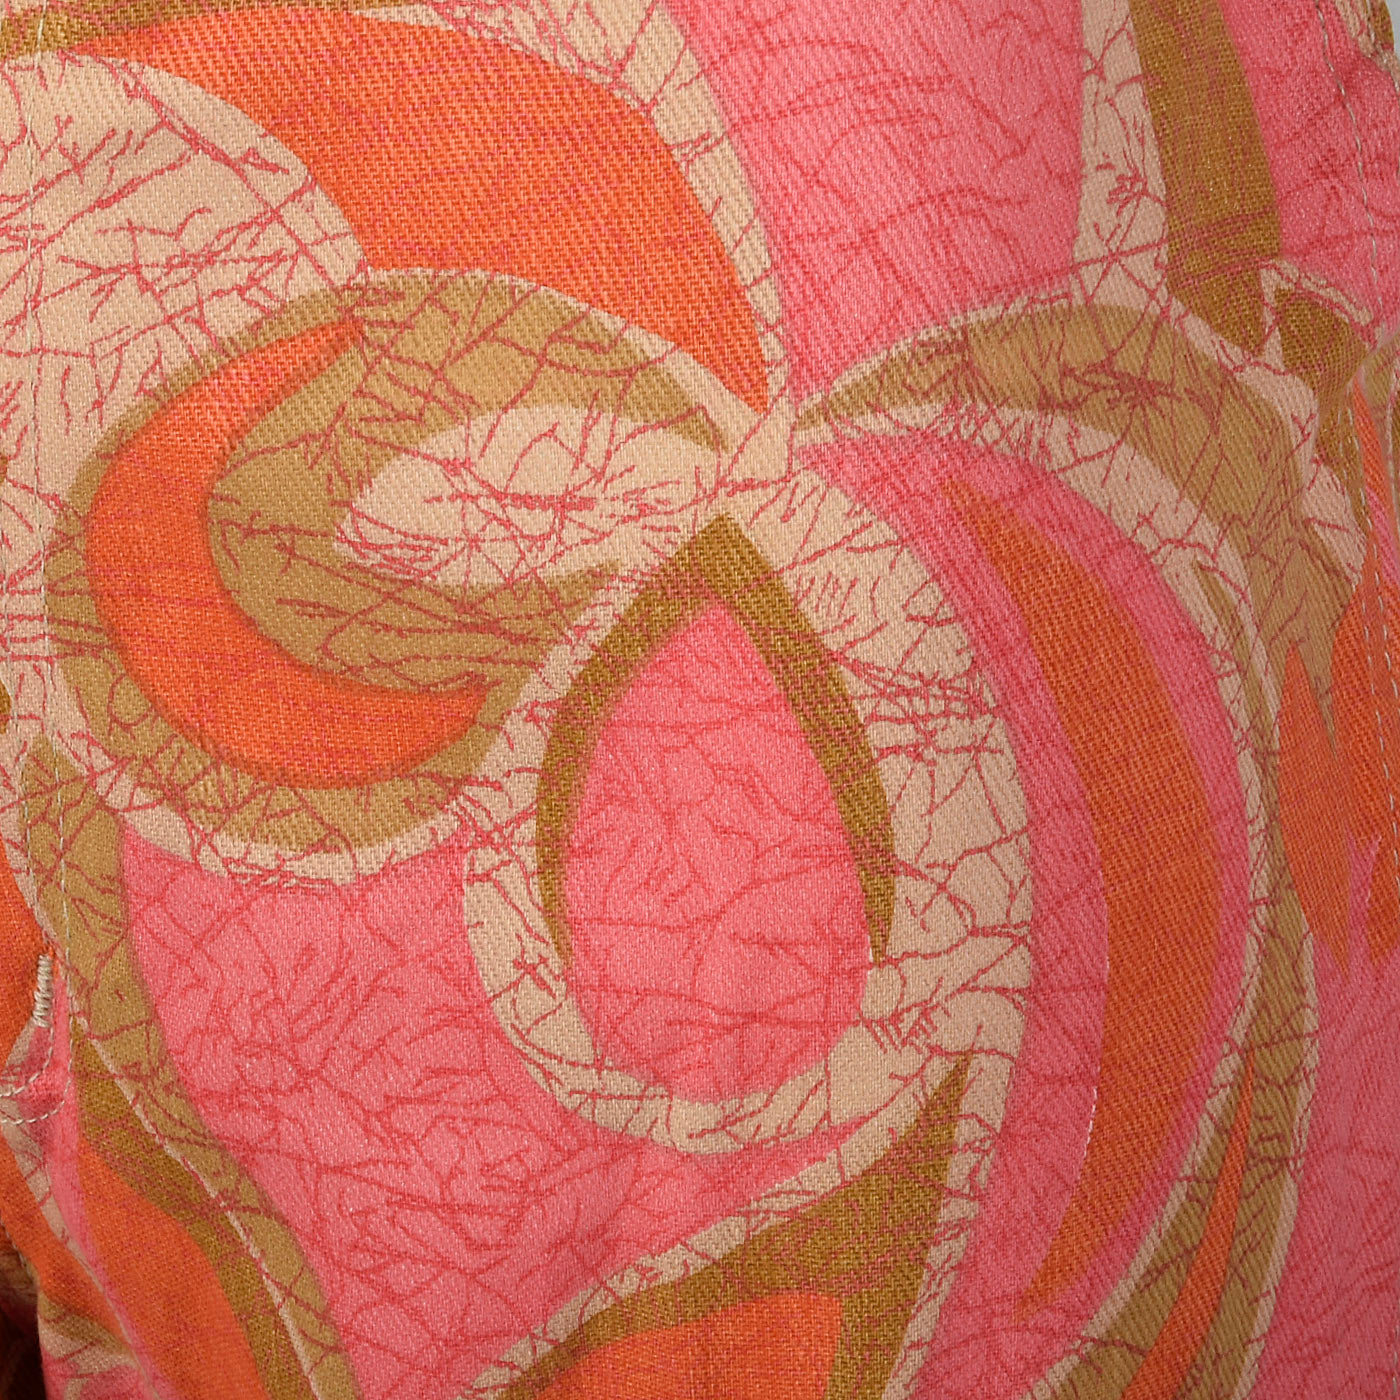 1970s Wrangler Pink and Orange Abstract Print Bellbottoms